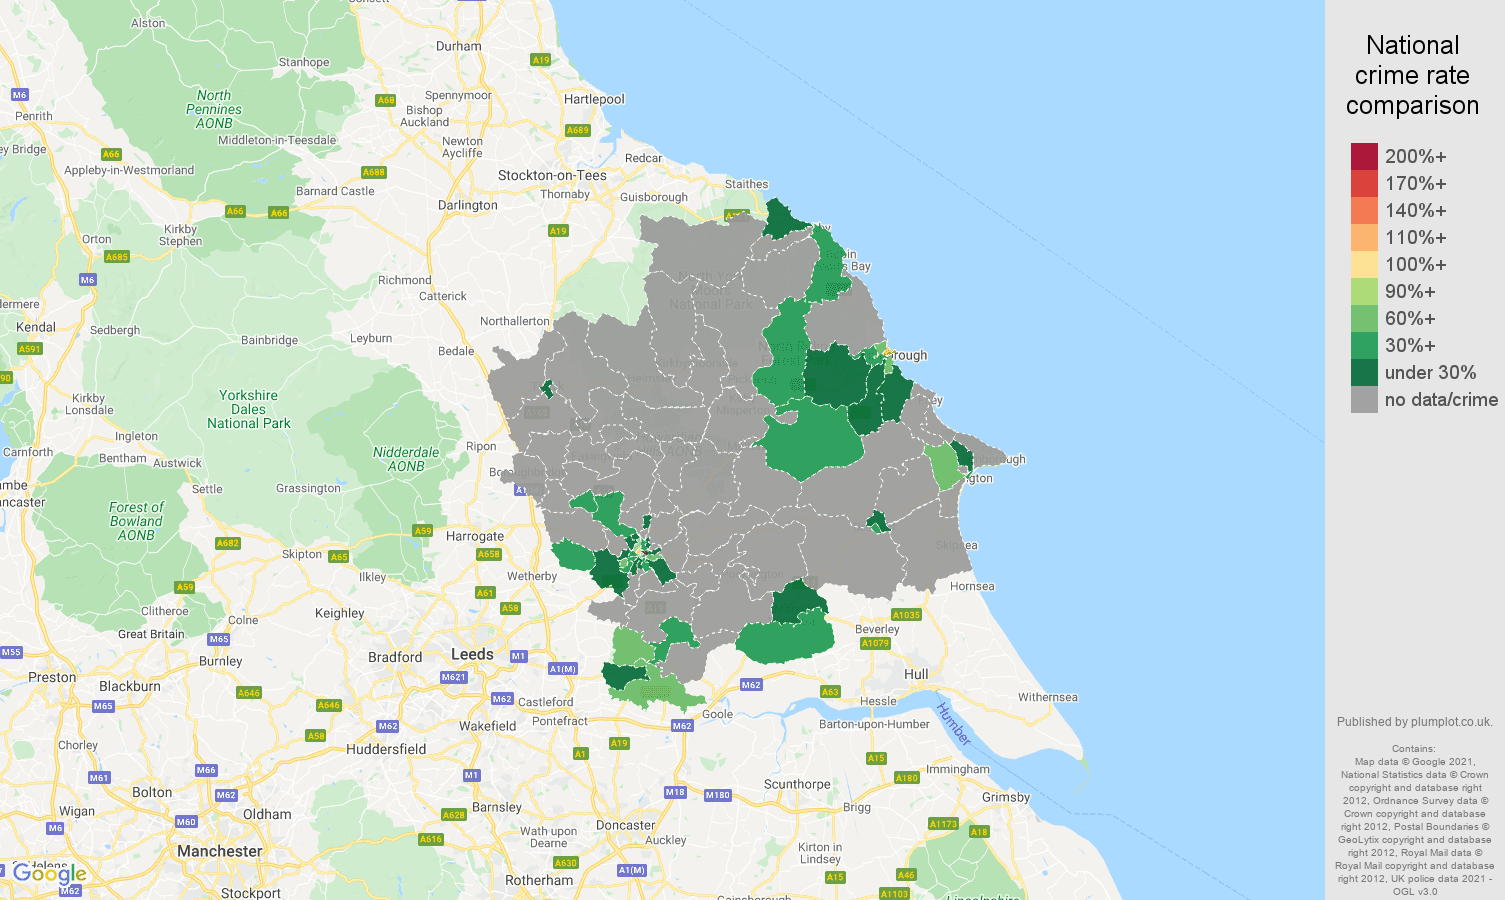 York robbery crime rate comparison map